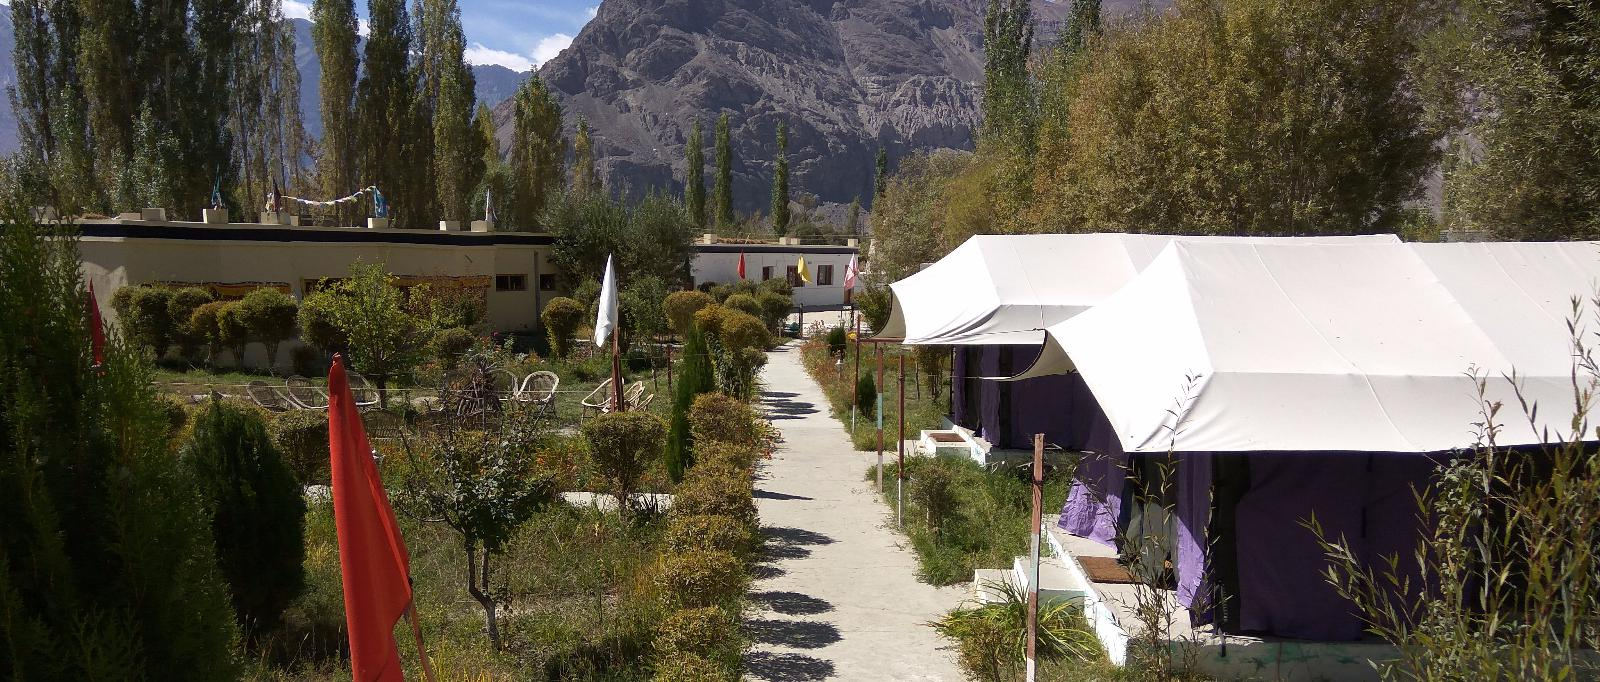 Luxery Camp in Leh, Camp In Ladakh, Valley Flower Camp Location